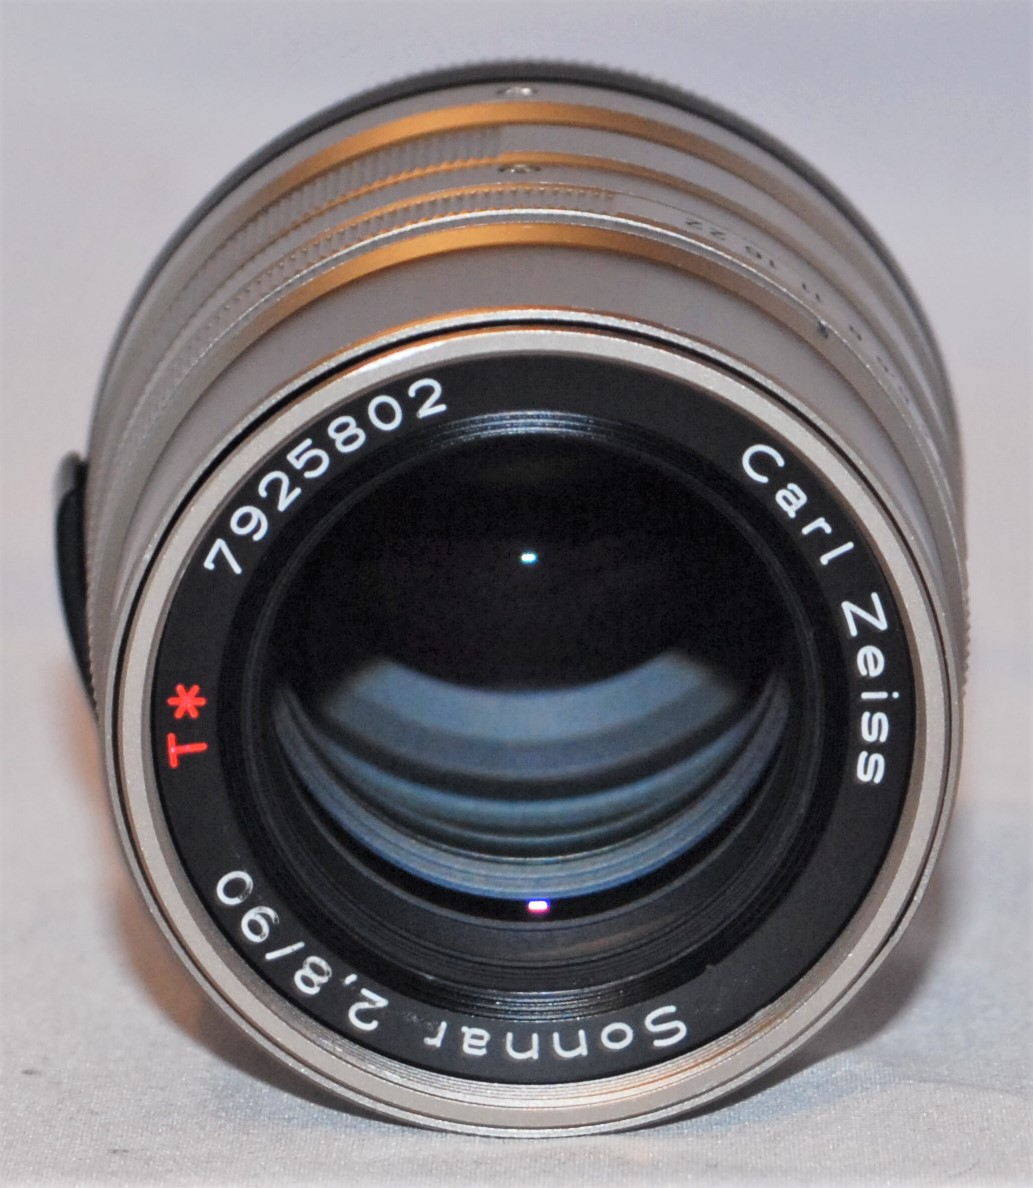 Zeiss Sonnar 90mm f2.8 for Contax G. Excellent condition.